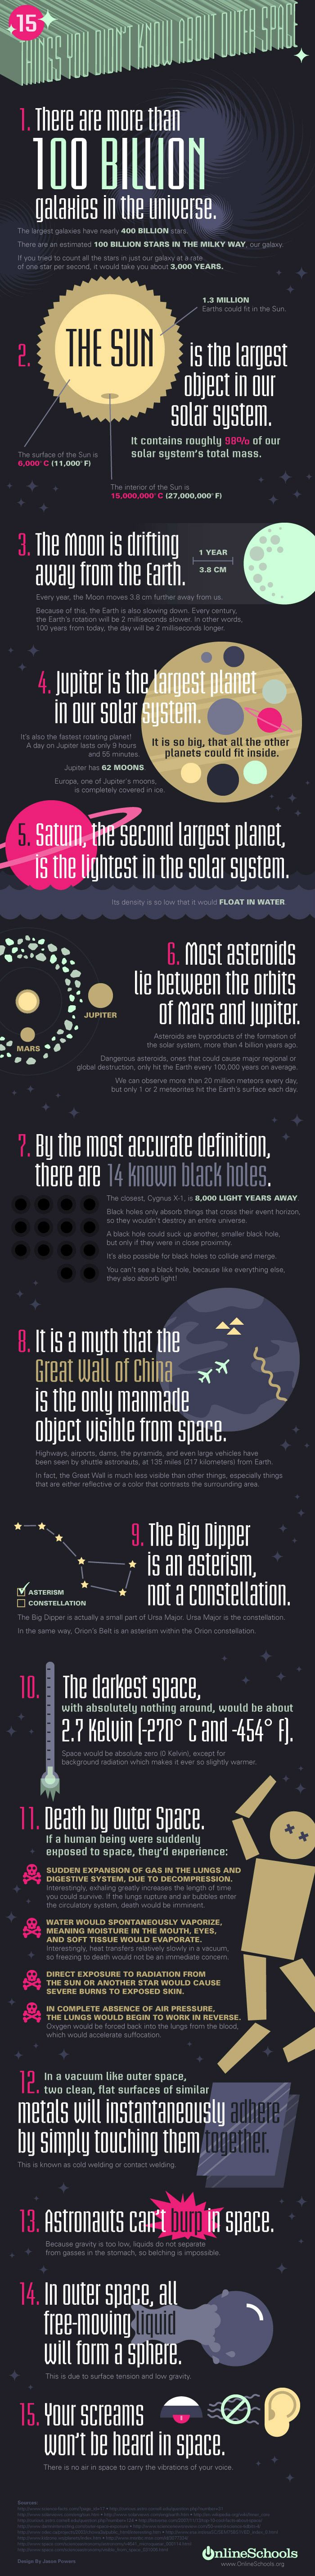 Top 15 Fascinating Facts You Might Not Know About Outer Space [INFOGRAPHIC]